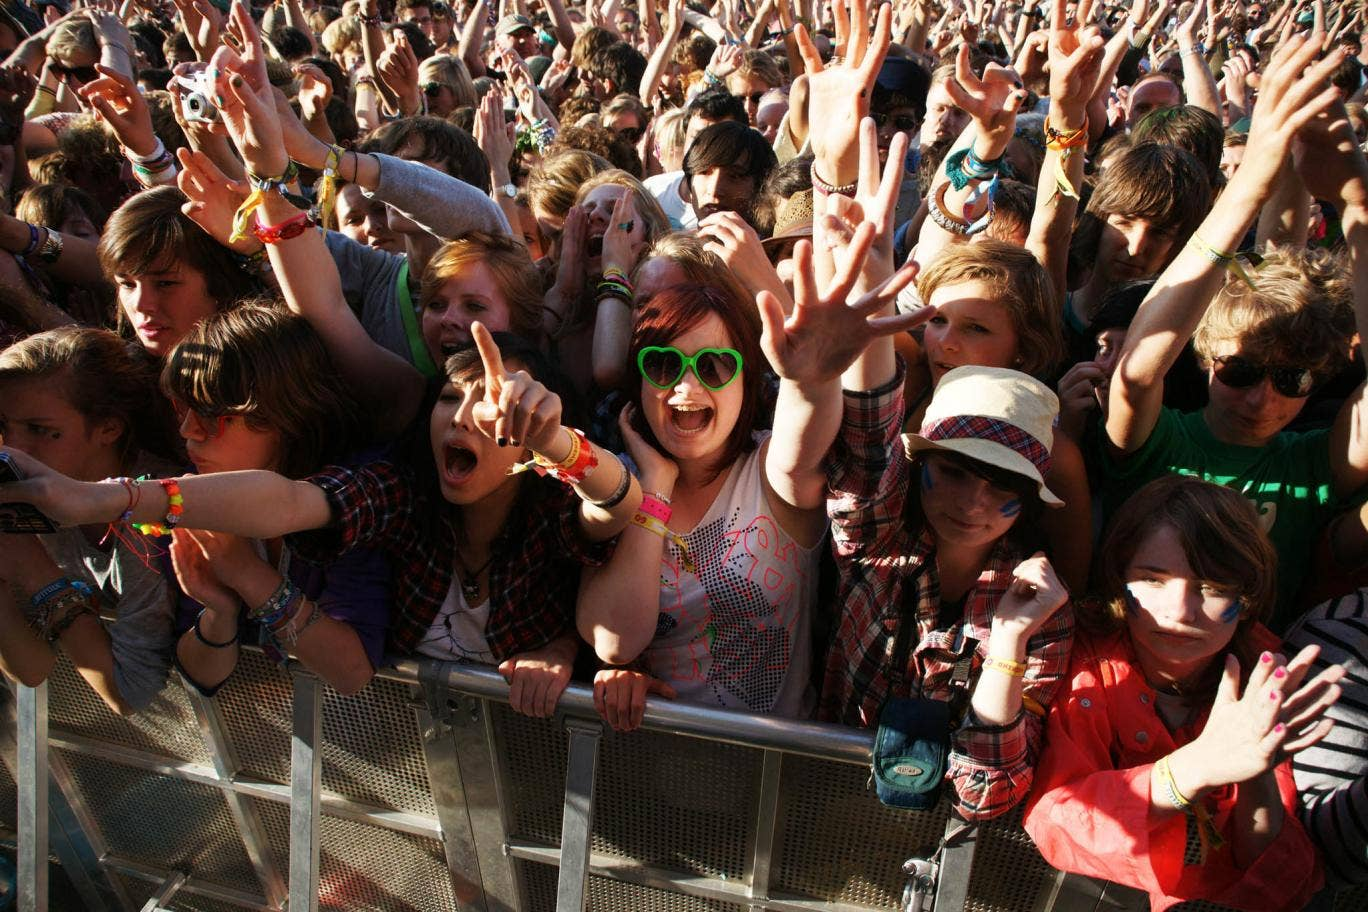 Fans watch acts perform live at Latitude Festival